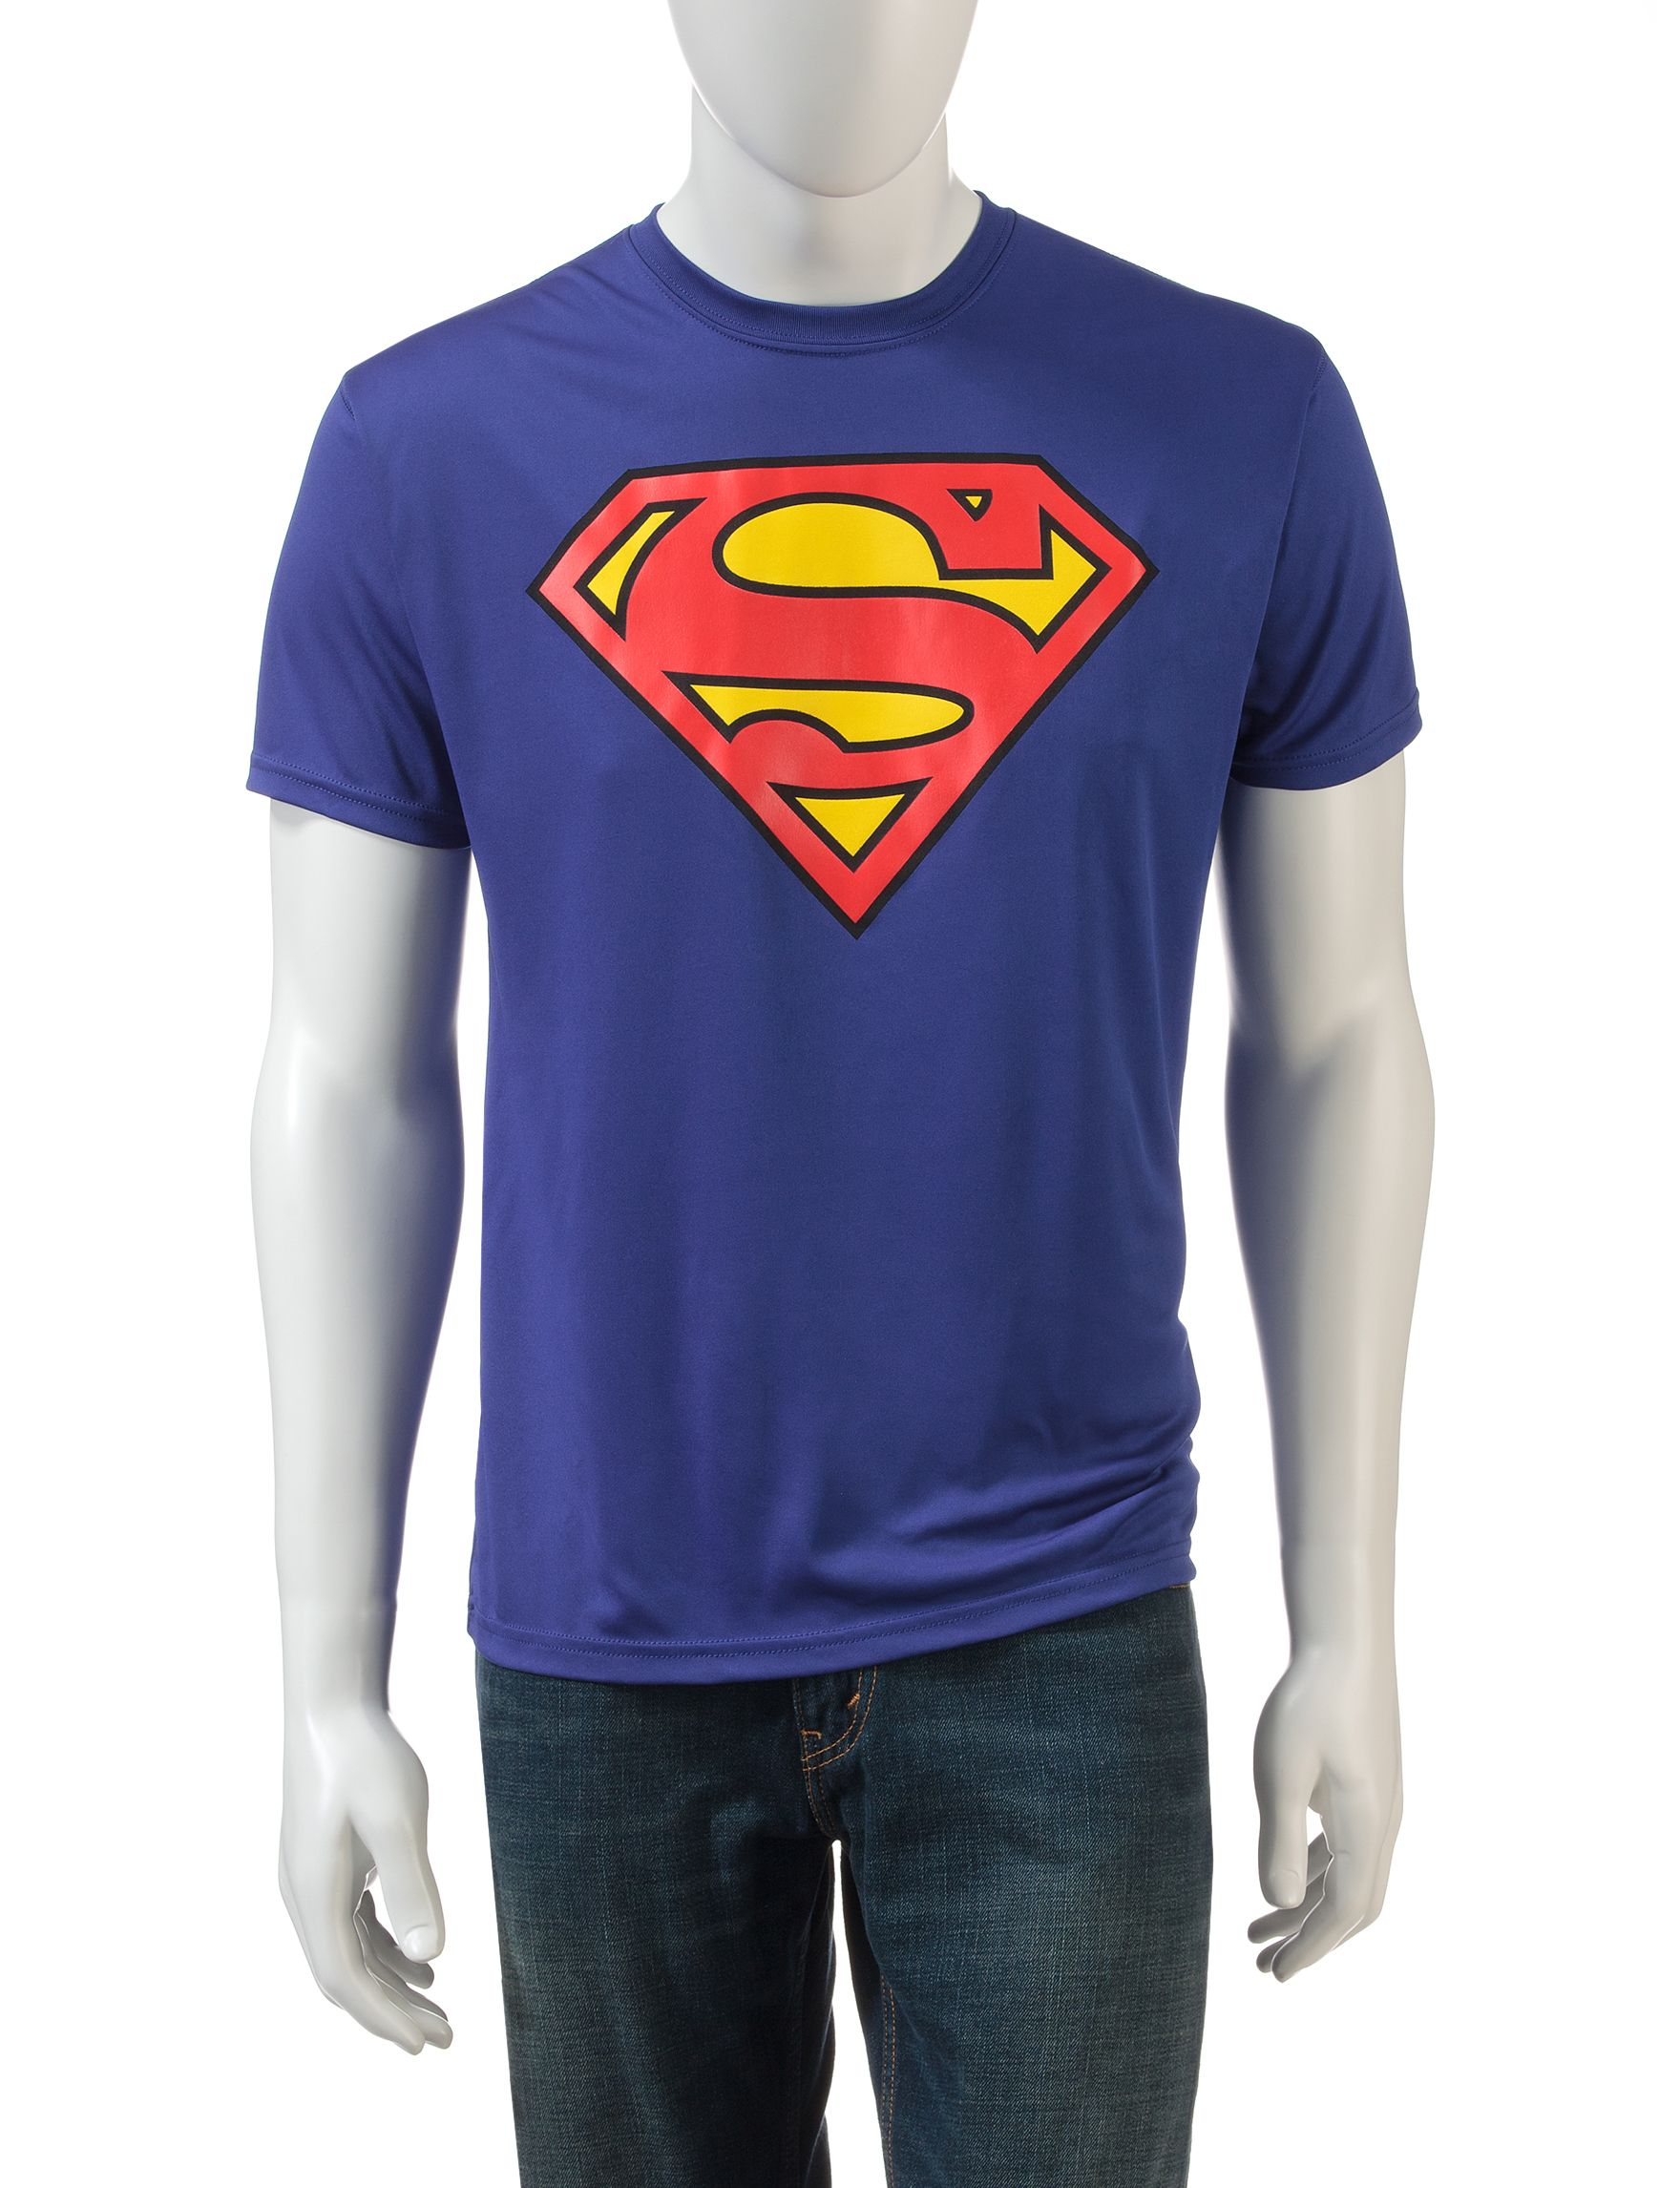 Buy and earn cashback for Superman Logo ... If we both buy this or any related product, we'll both get cashback! http://yuno.co/?ref=p7p4q